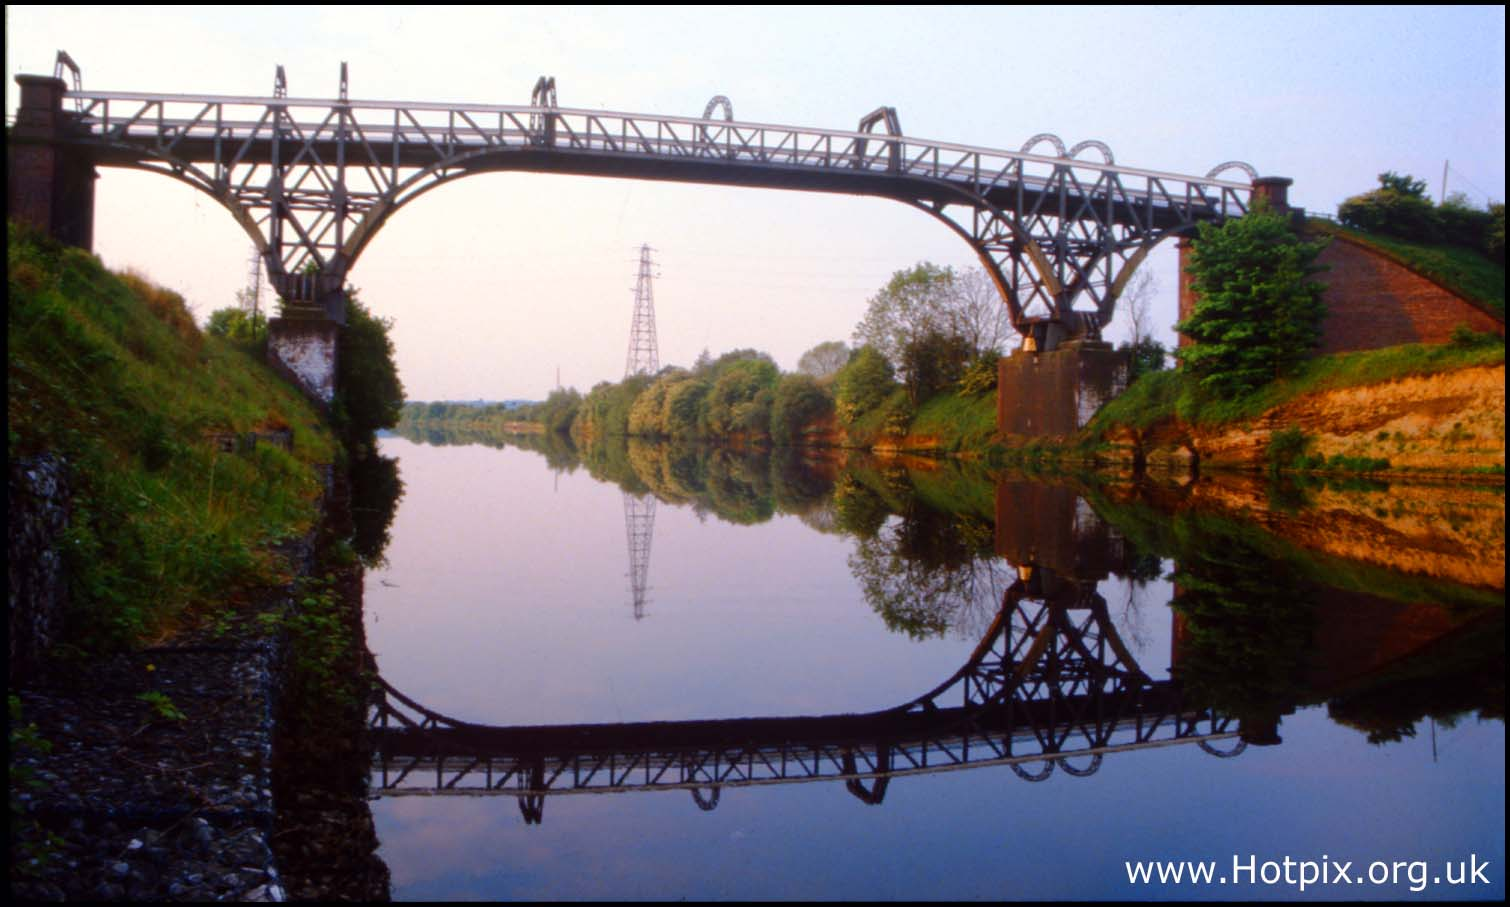 manchester,ship,canal,co,company,MSCC,grappenhall,stockton,heath,cantilever,bridge,warrington,cheshire,england,uk,britain,water,over,head,overhead,still,summer,mirror,image,reflection,glass,Chehire,hotpics,hotpic,hotpick,hotpicks,hot,pics,pix,picks,hotpix.freeserve.co.uk,hotpix!